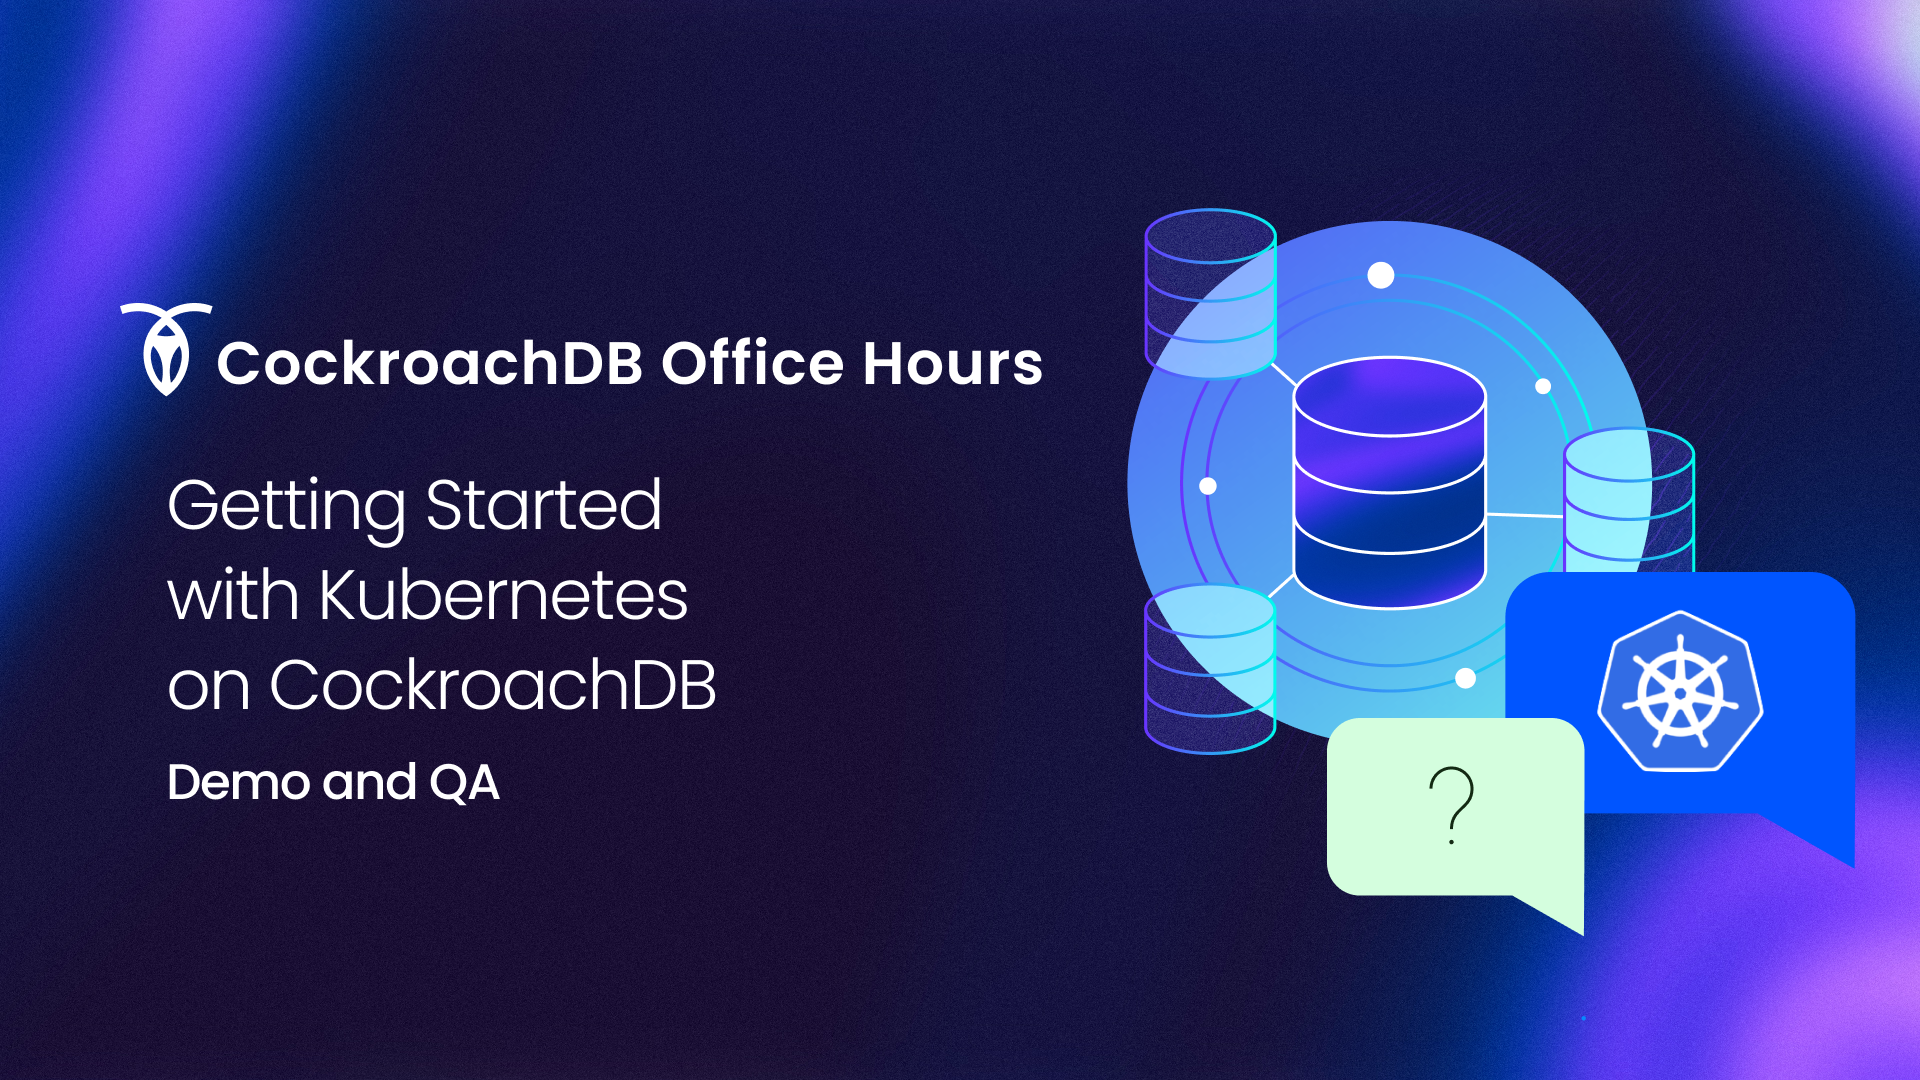 CockroachDB Office Hours: Getting Started with Kubernetes on CockroachDB